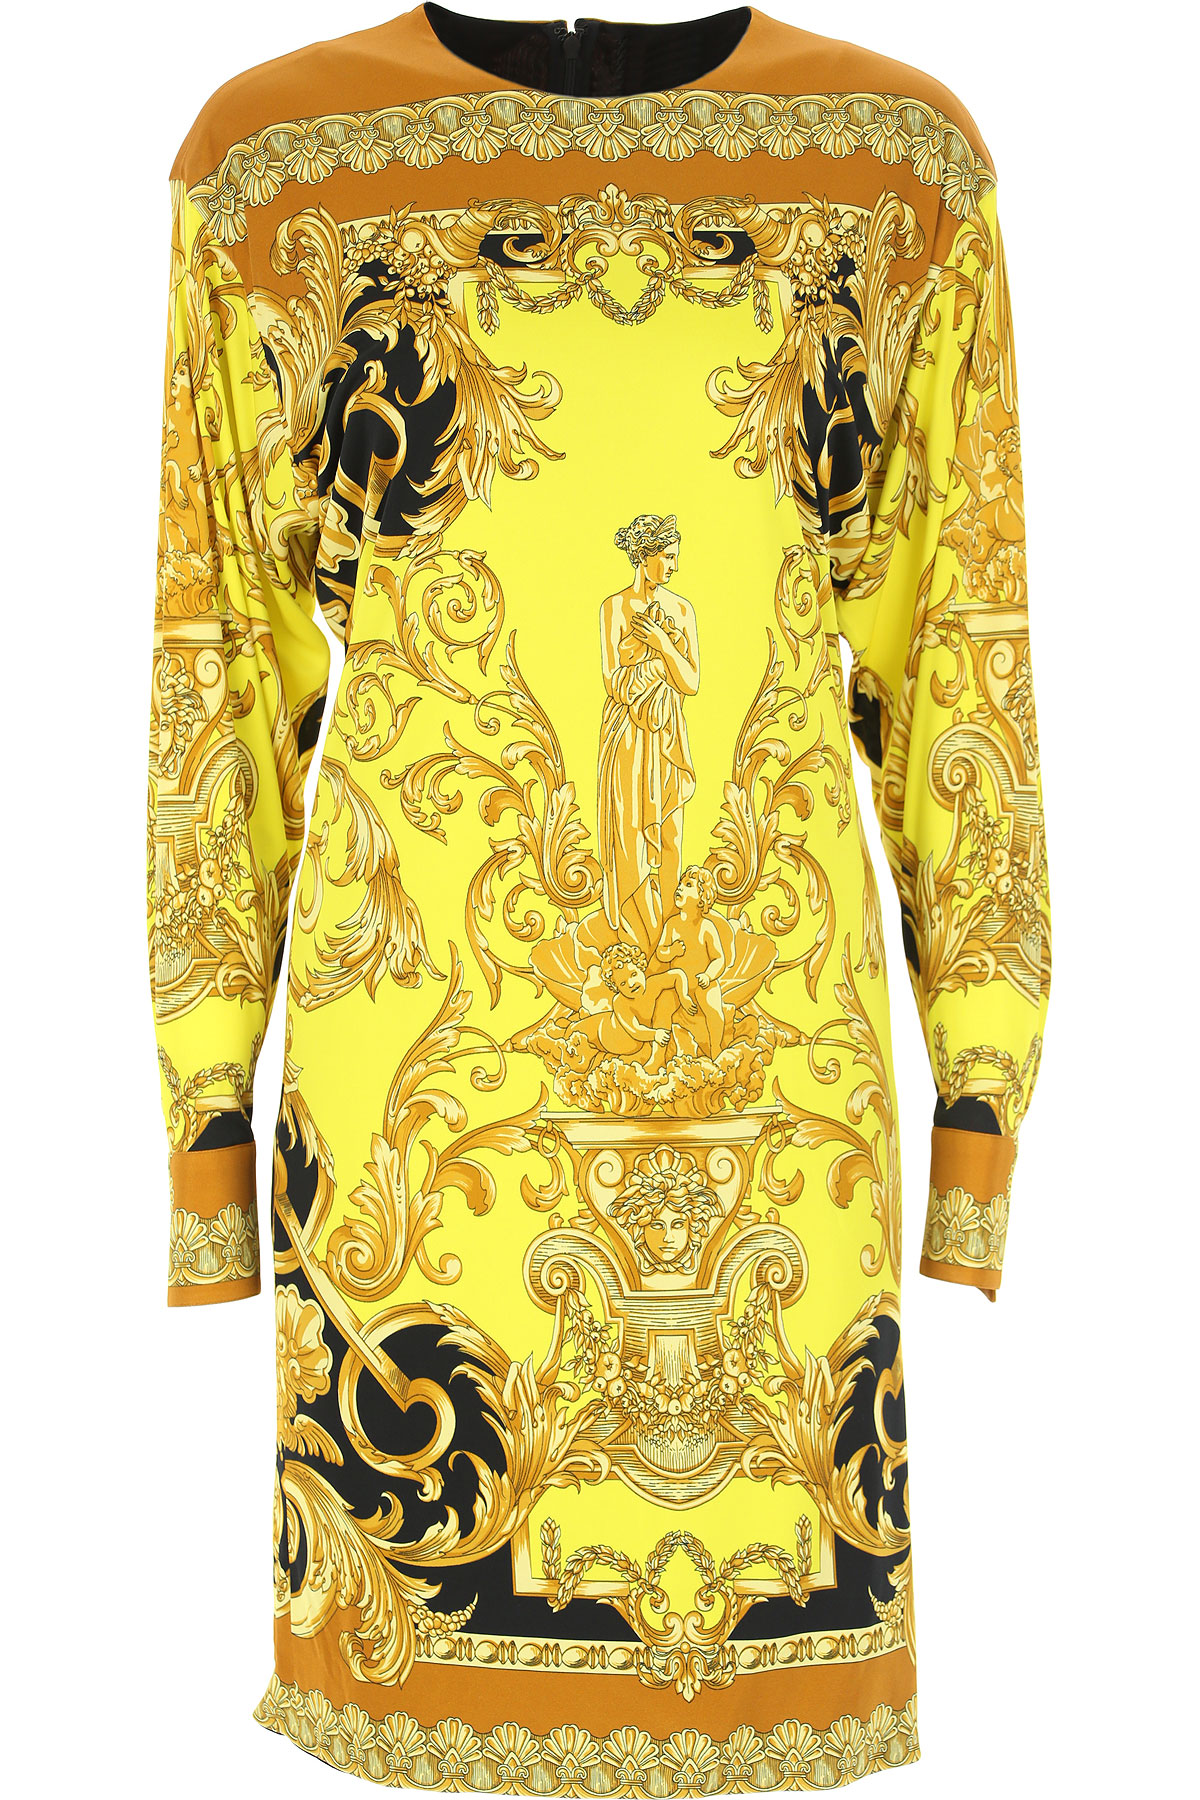 Versace Dress for Women, Evening Cocktail Party, Yellow, Viscose, 2019, 1 - S - IT 40 2 - M - IT 42